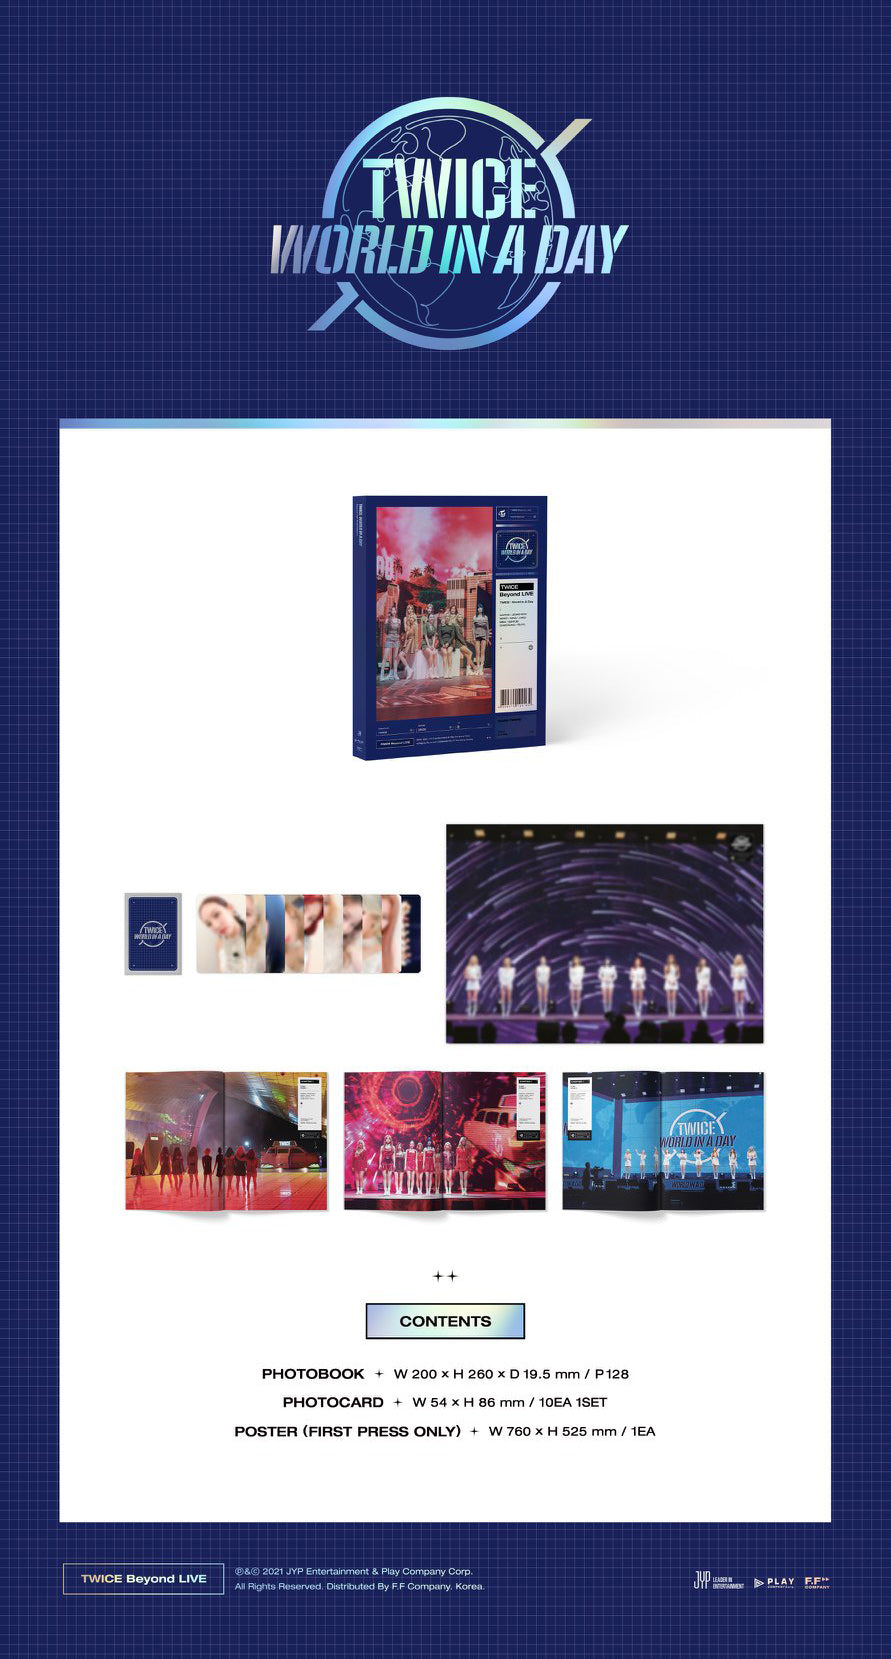 TWICE - Beyond Live [TWICE: World in a Day] Photobook